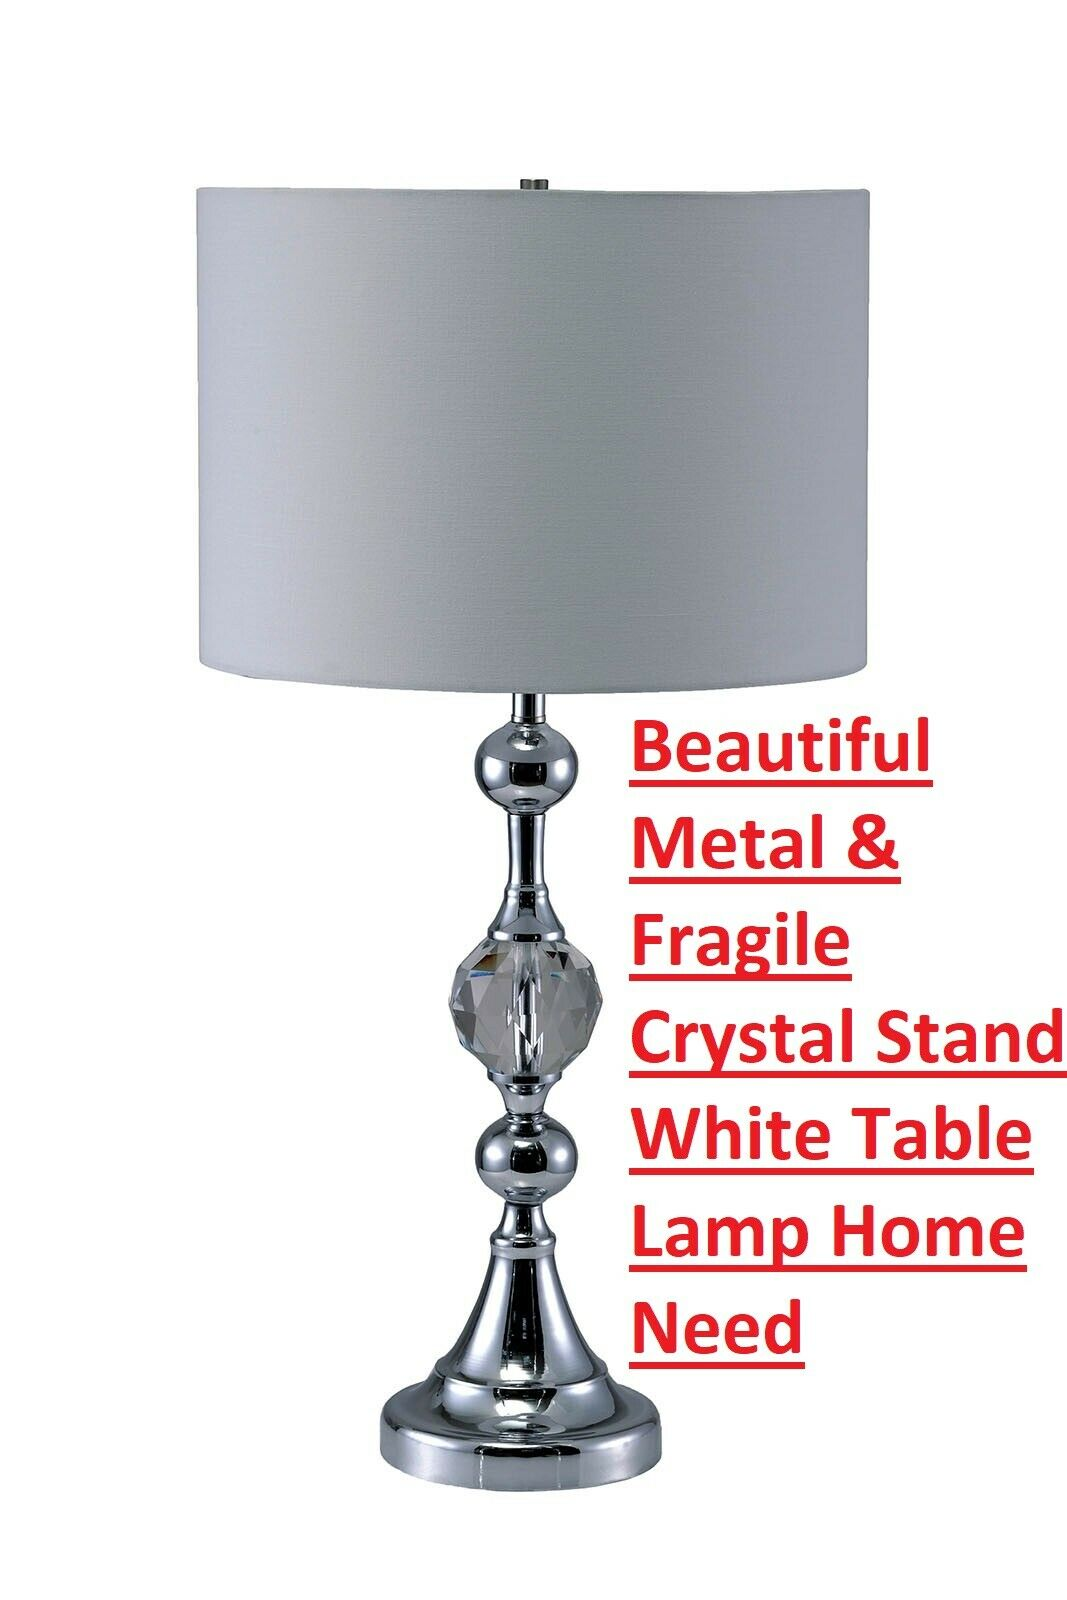 Beautiful Metal & Fragile Crystal Stand Weiß Table Lamp Home Need